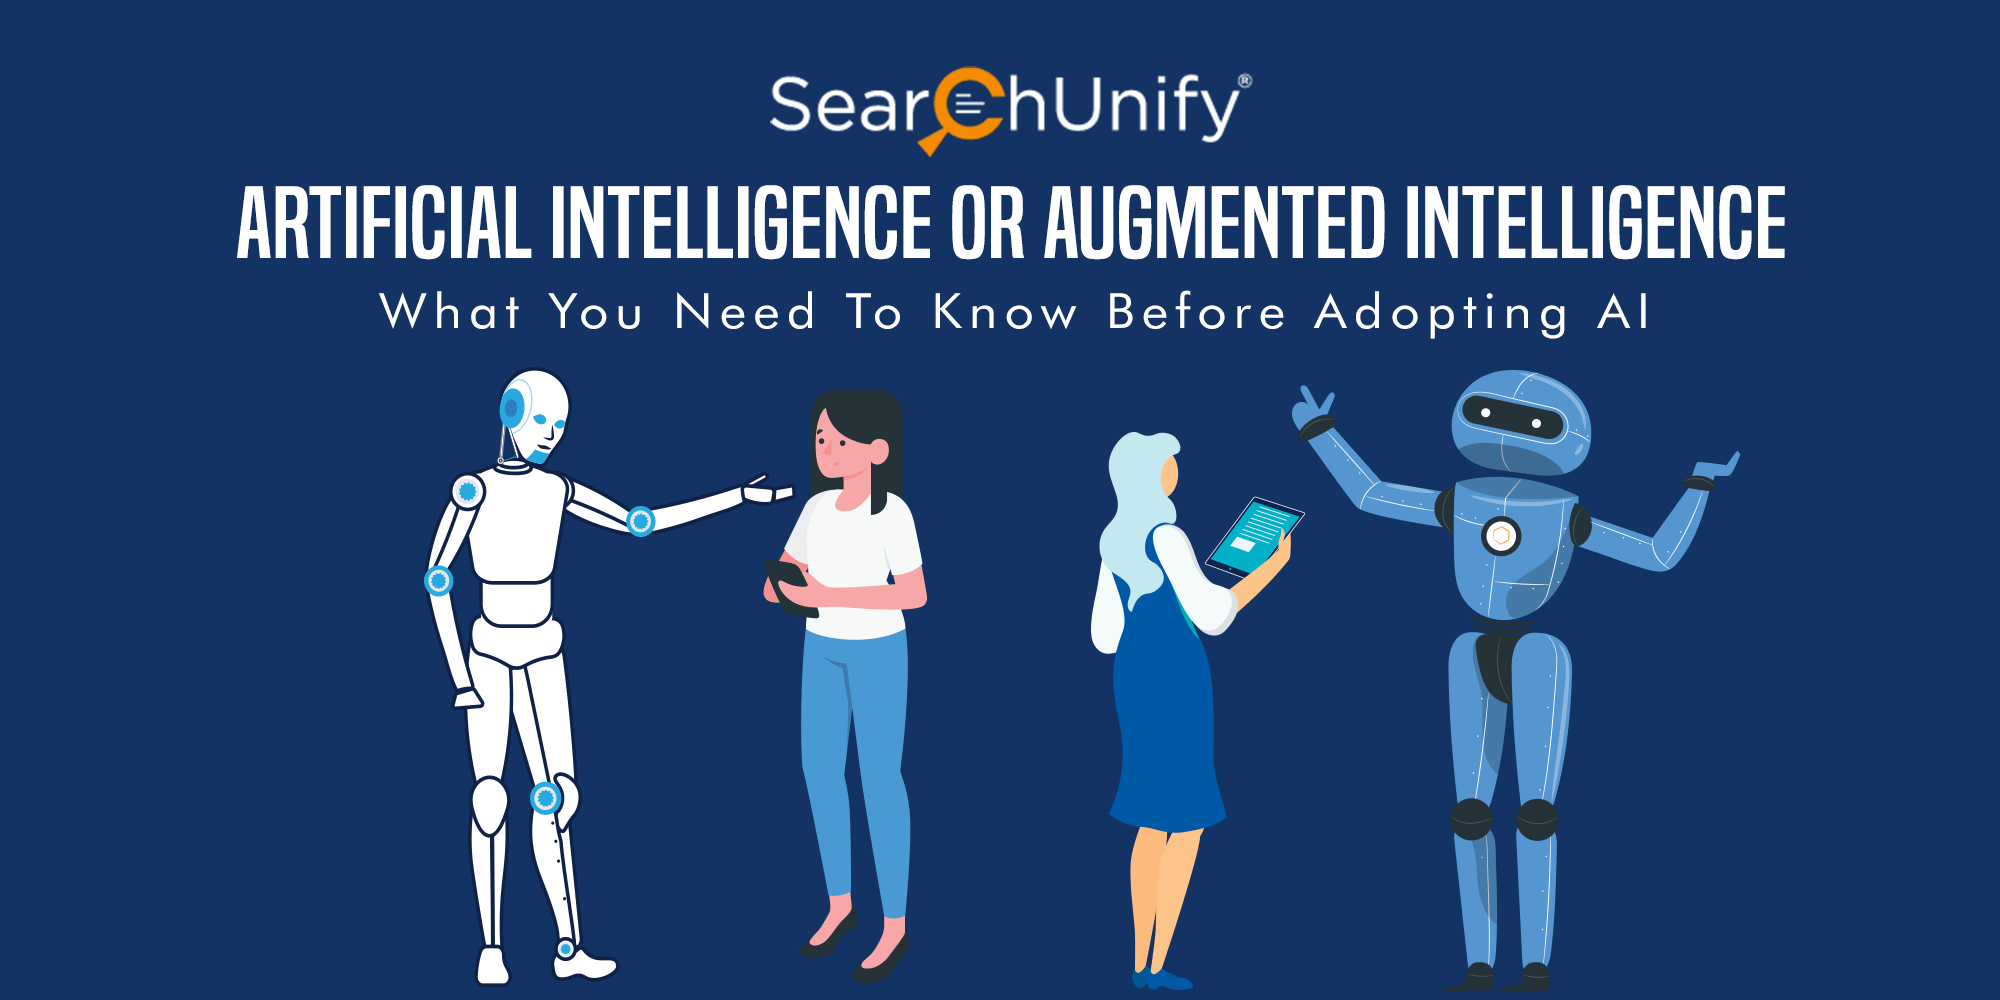 Artificial Intelligence or Augmented Intelligence - What You Need To Know Before Adopting AI